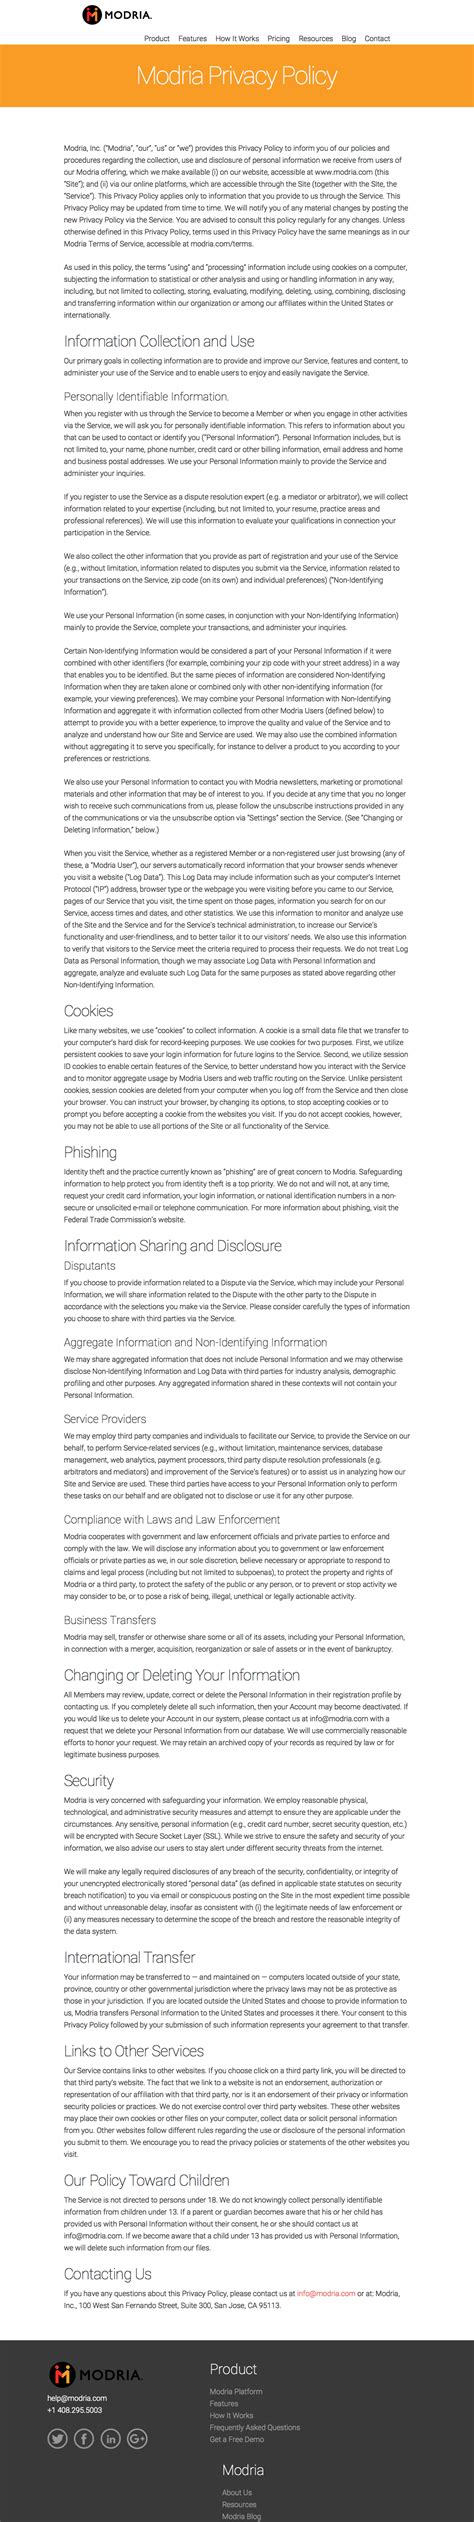 Elegant Privacy Policy Template For Small Business 2018 Privacy Policy Template